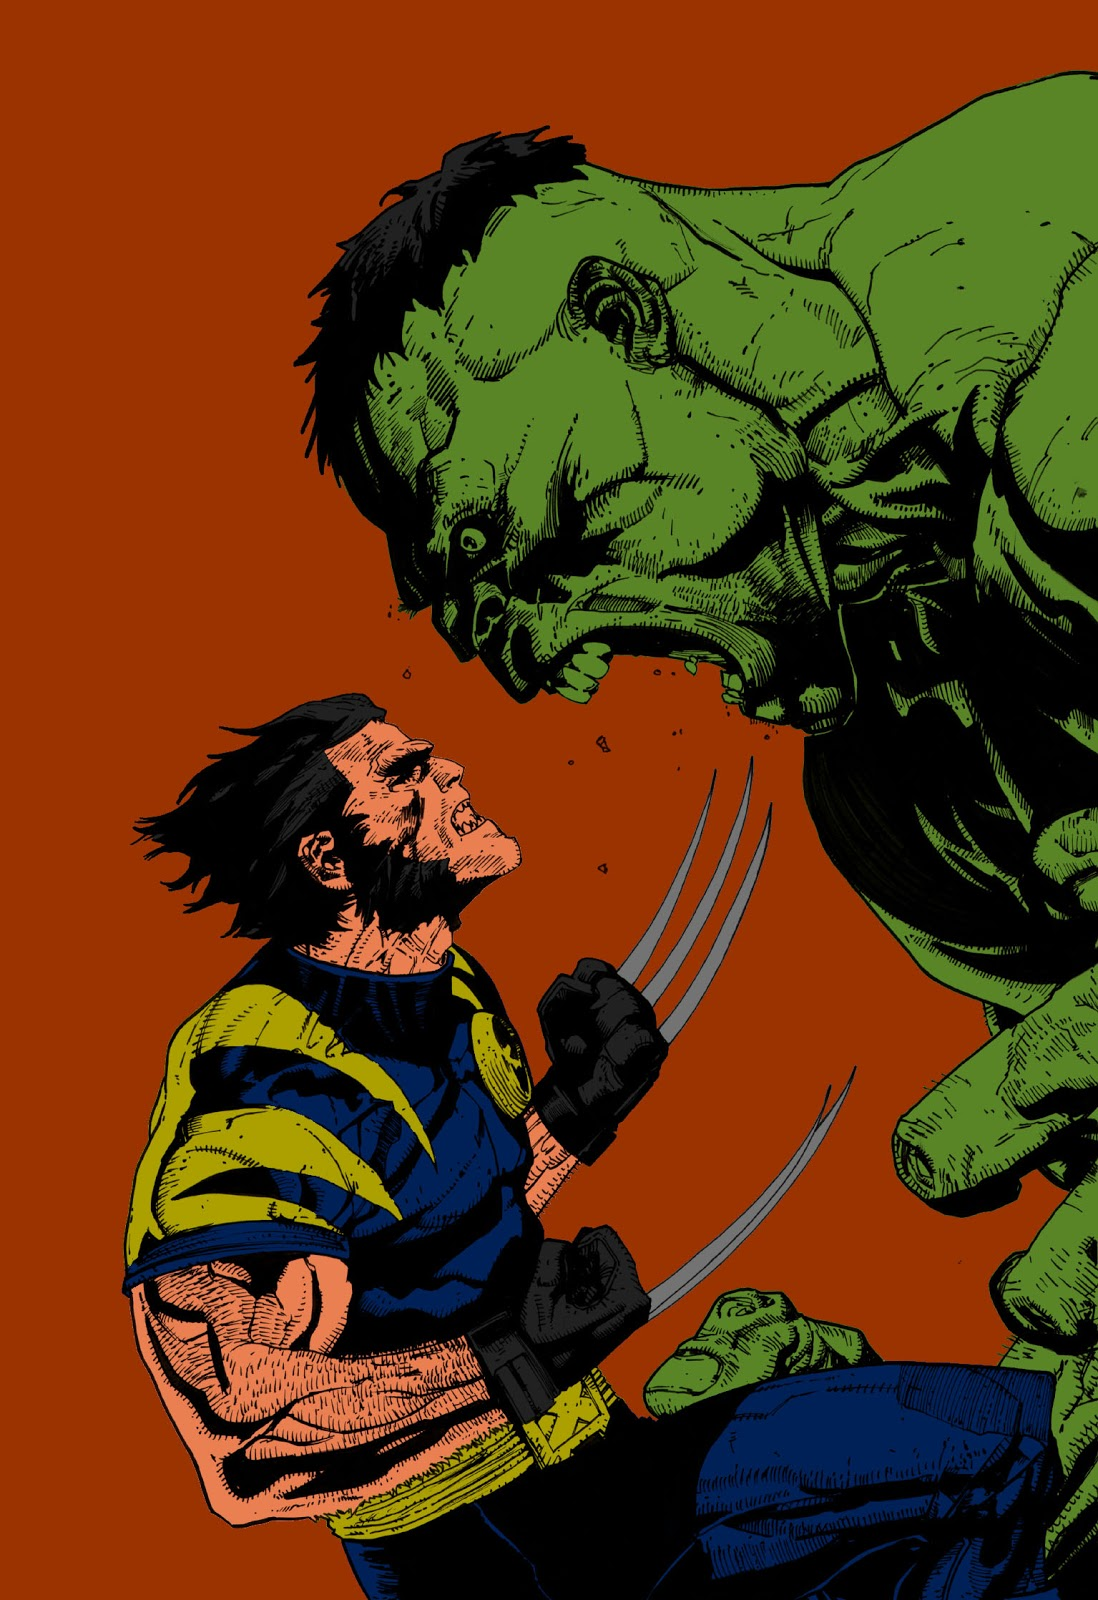 Cover of hulk vs wolverine plus a few photoshop filters at the end